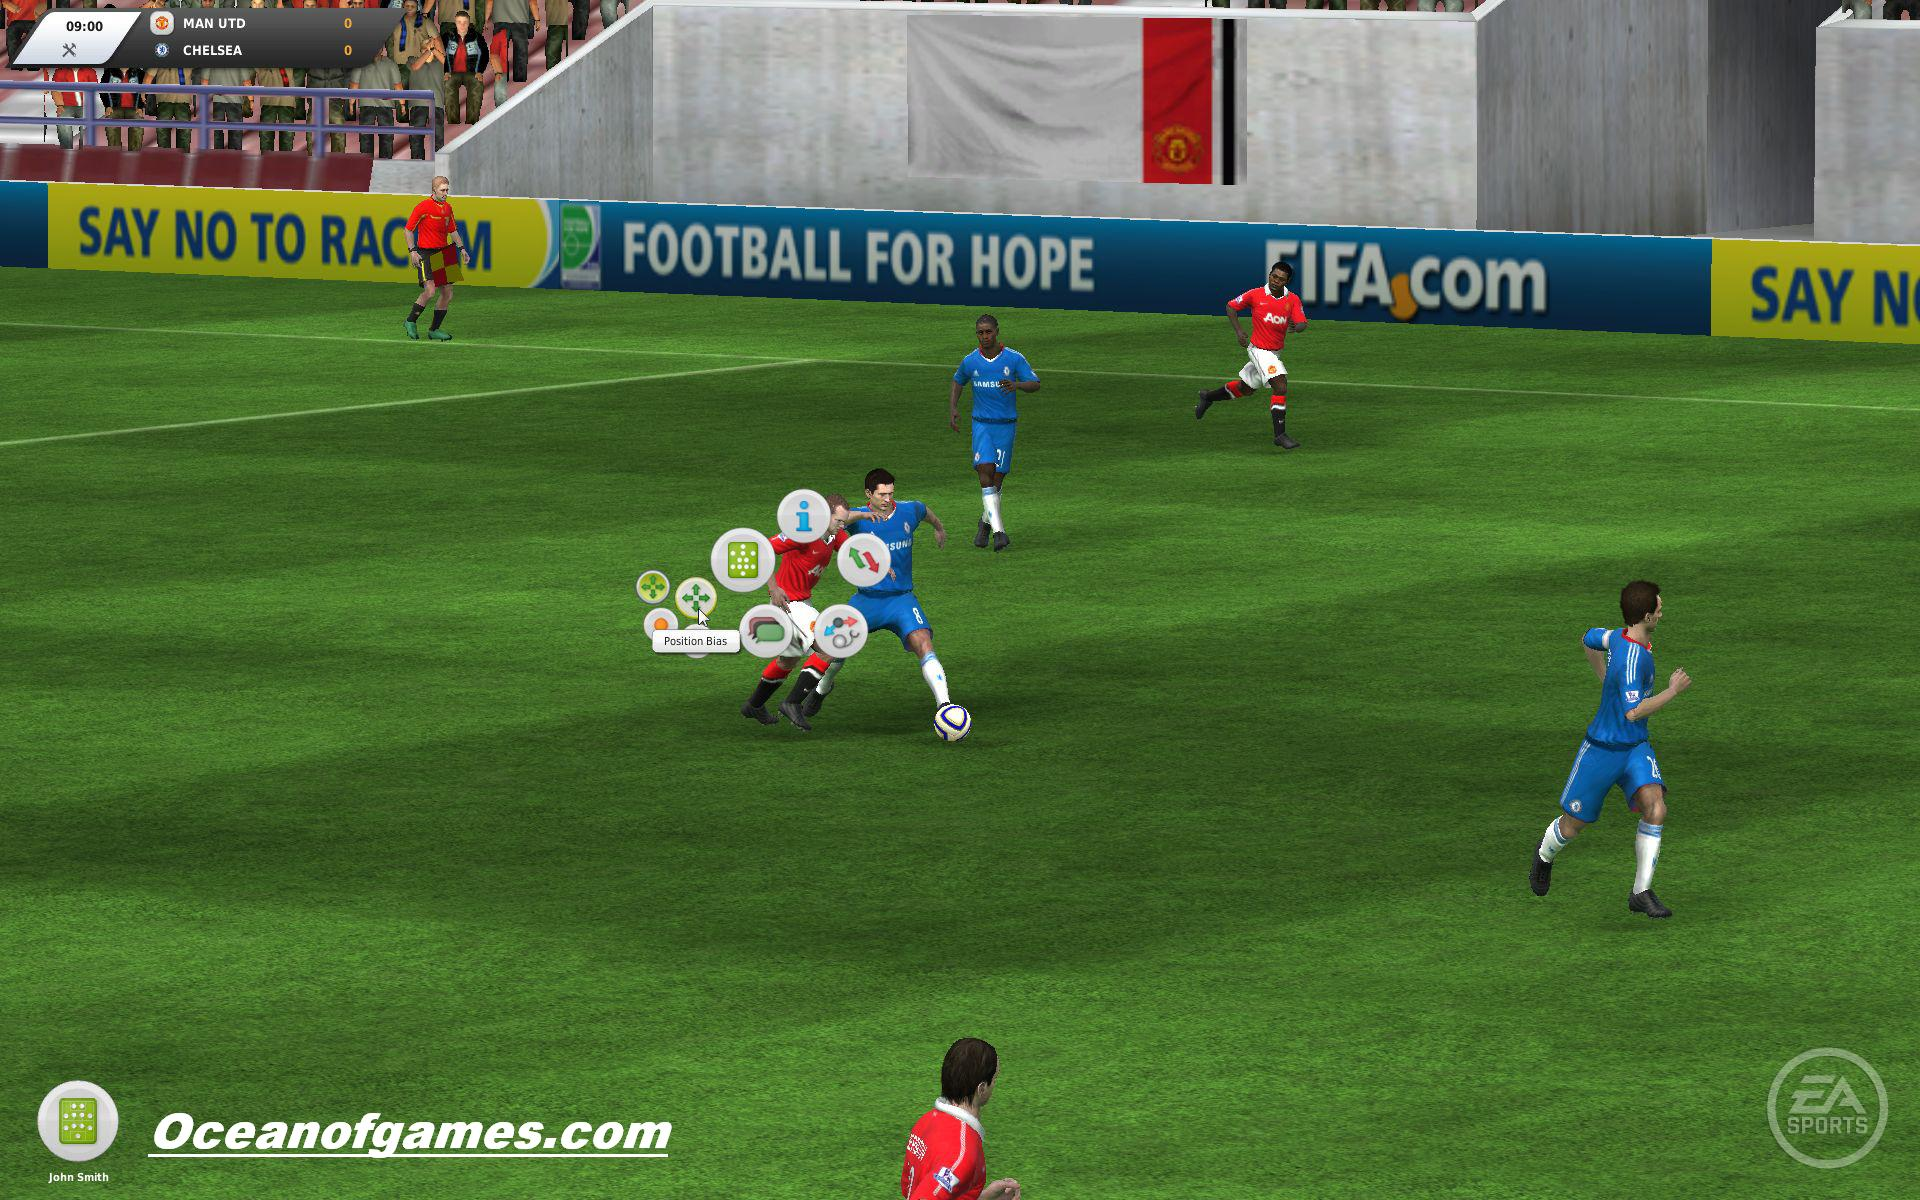 FIFA-Manager-12 FREE